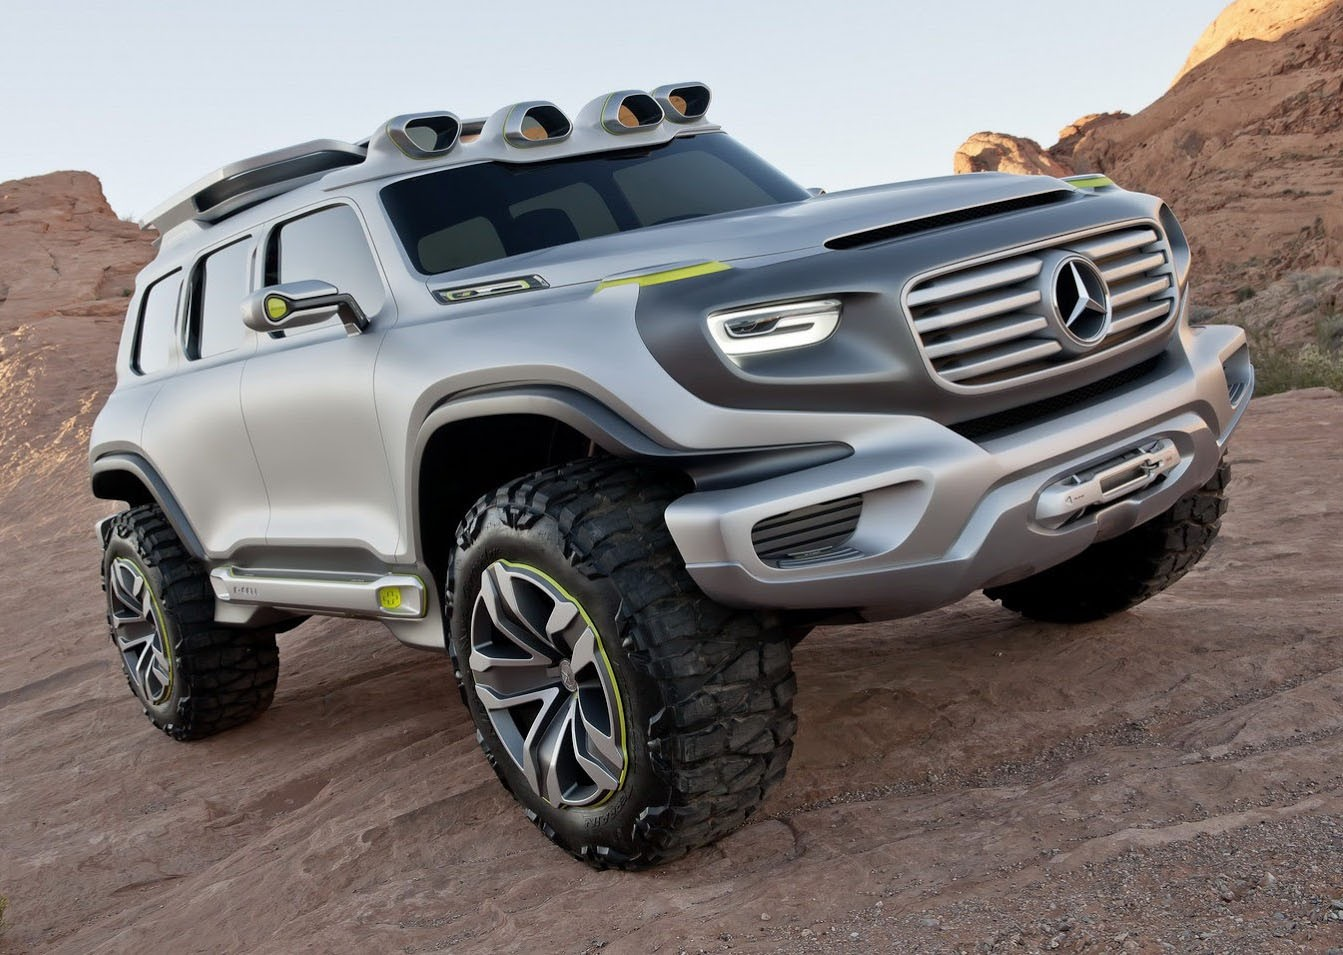 Mercedes-Benz GLB SUV To Feature G-Class Inspired Styling